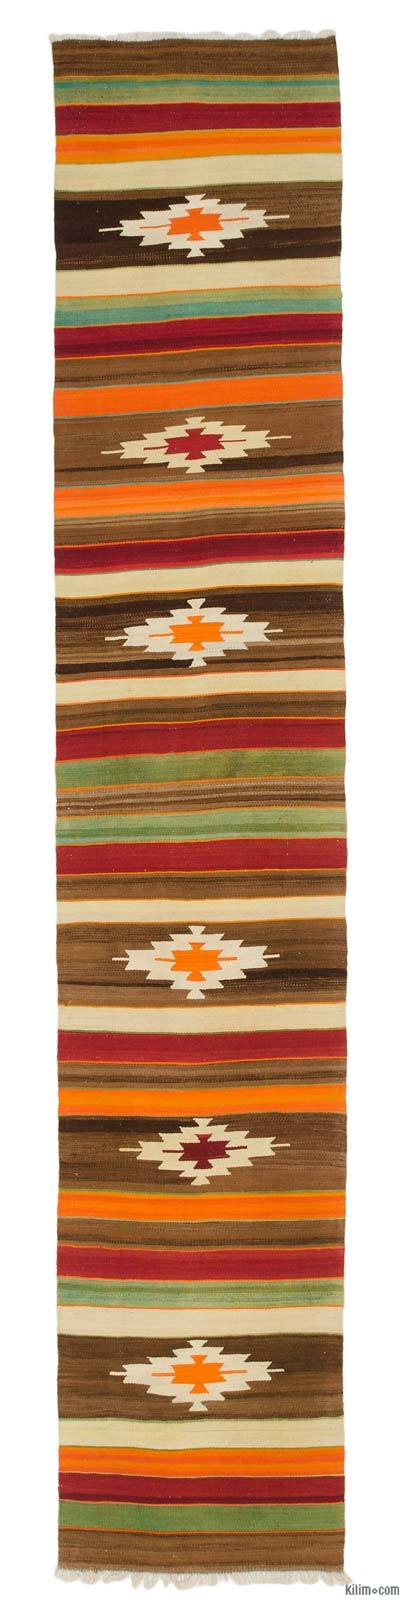 "Vintage Turkish Kilim Runner - 2' 11"" x 15' 7"" (35 in. x 187 in.)"